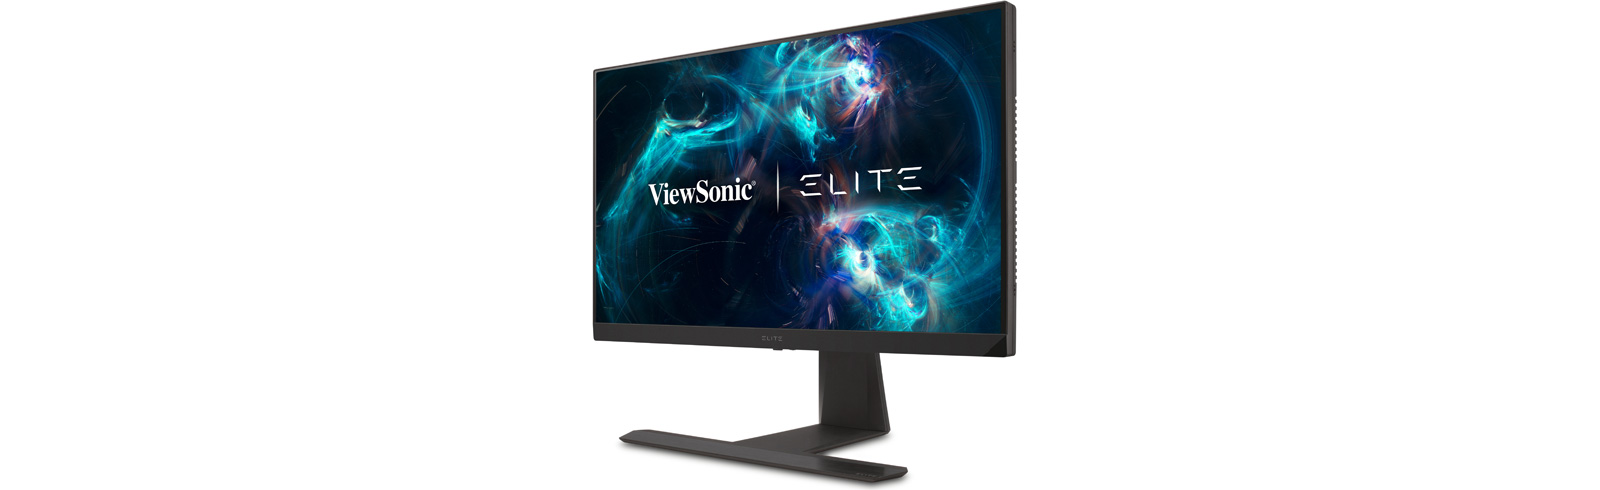 Viewsonic XG550 is announced together with the launch of the ViewSonic XG270QC and XG270